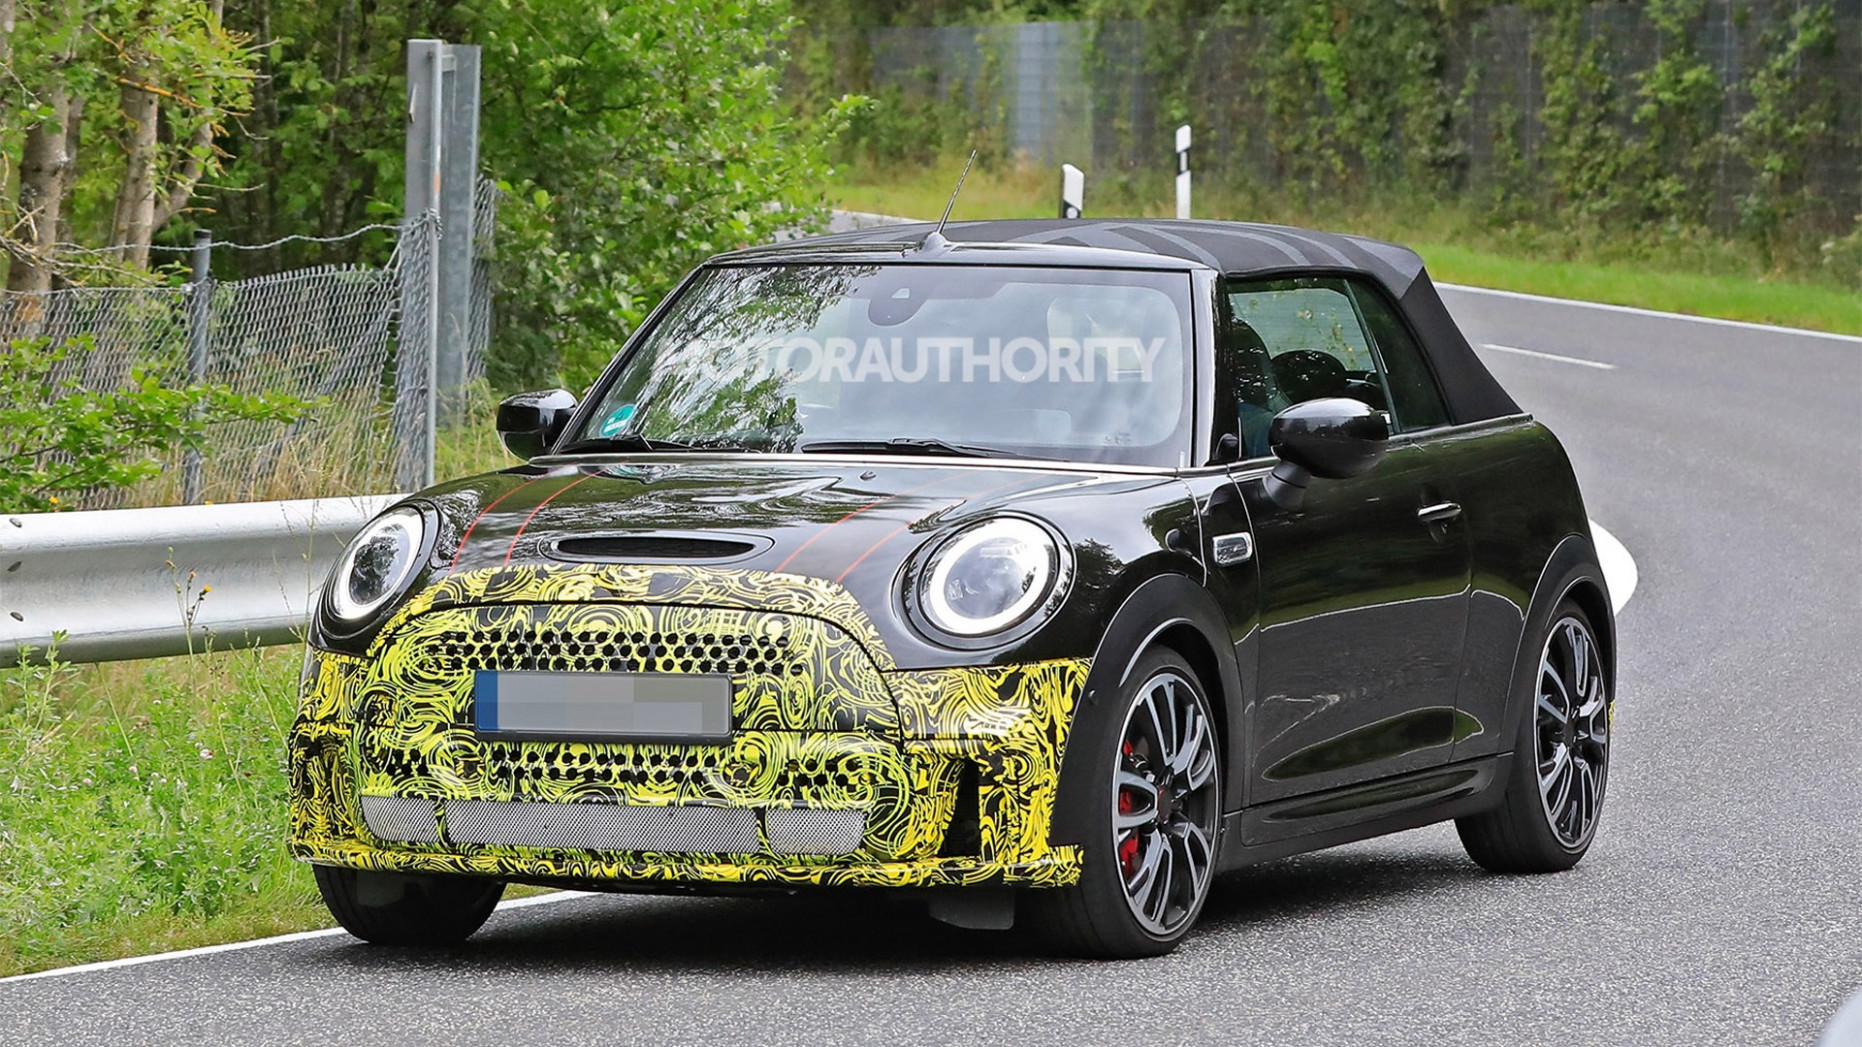 Release 2022 Spy Shots Mini Countryman